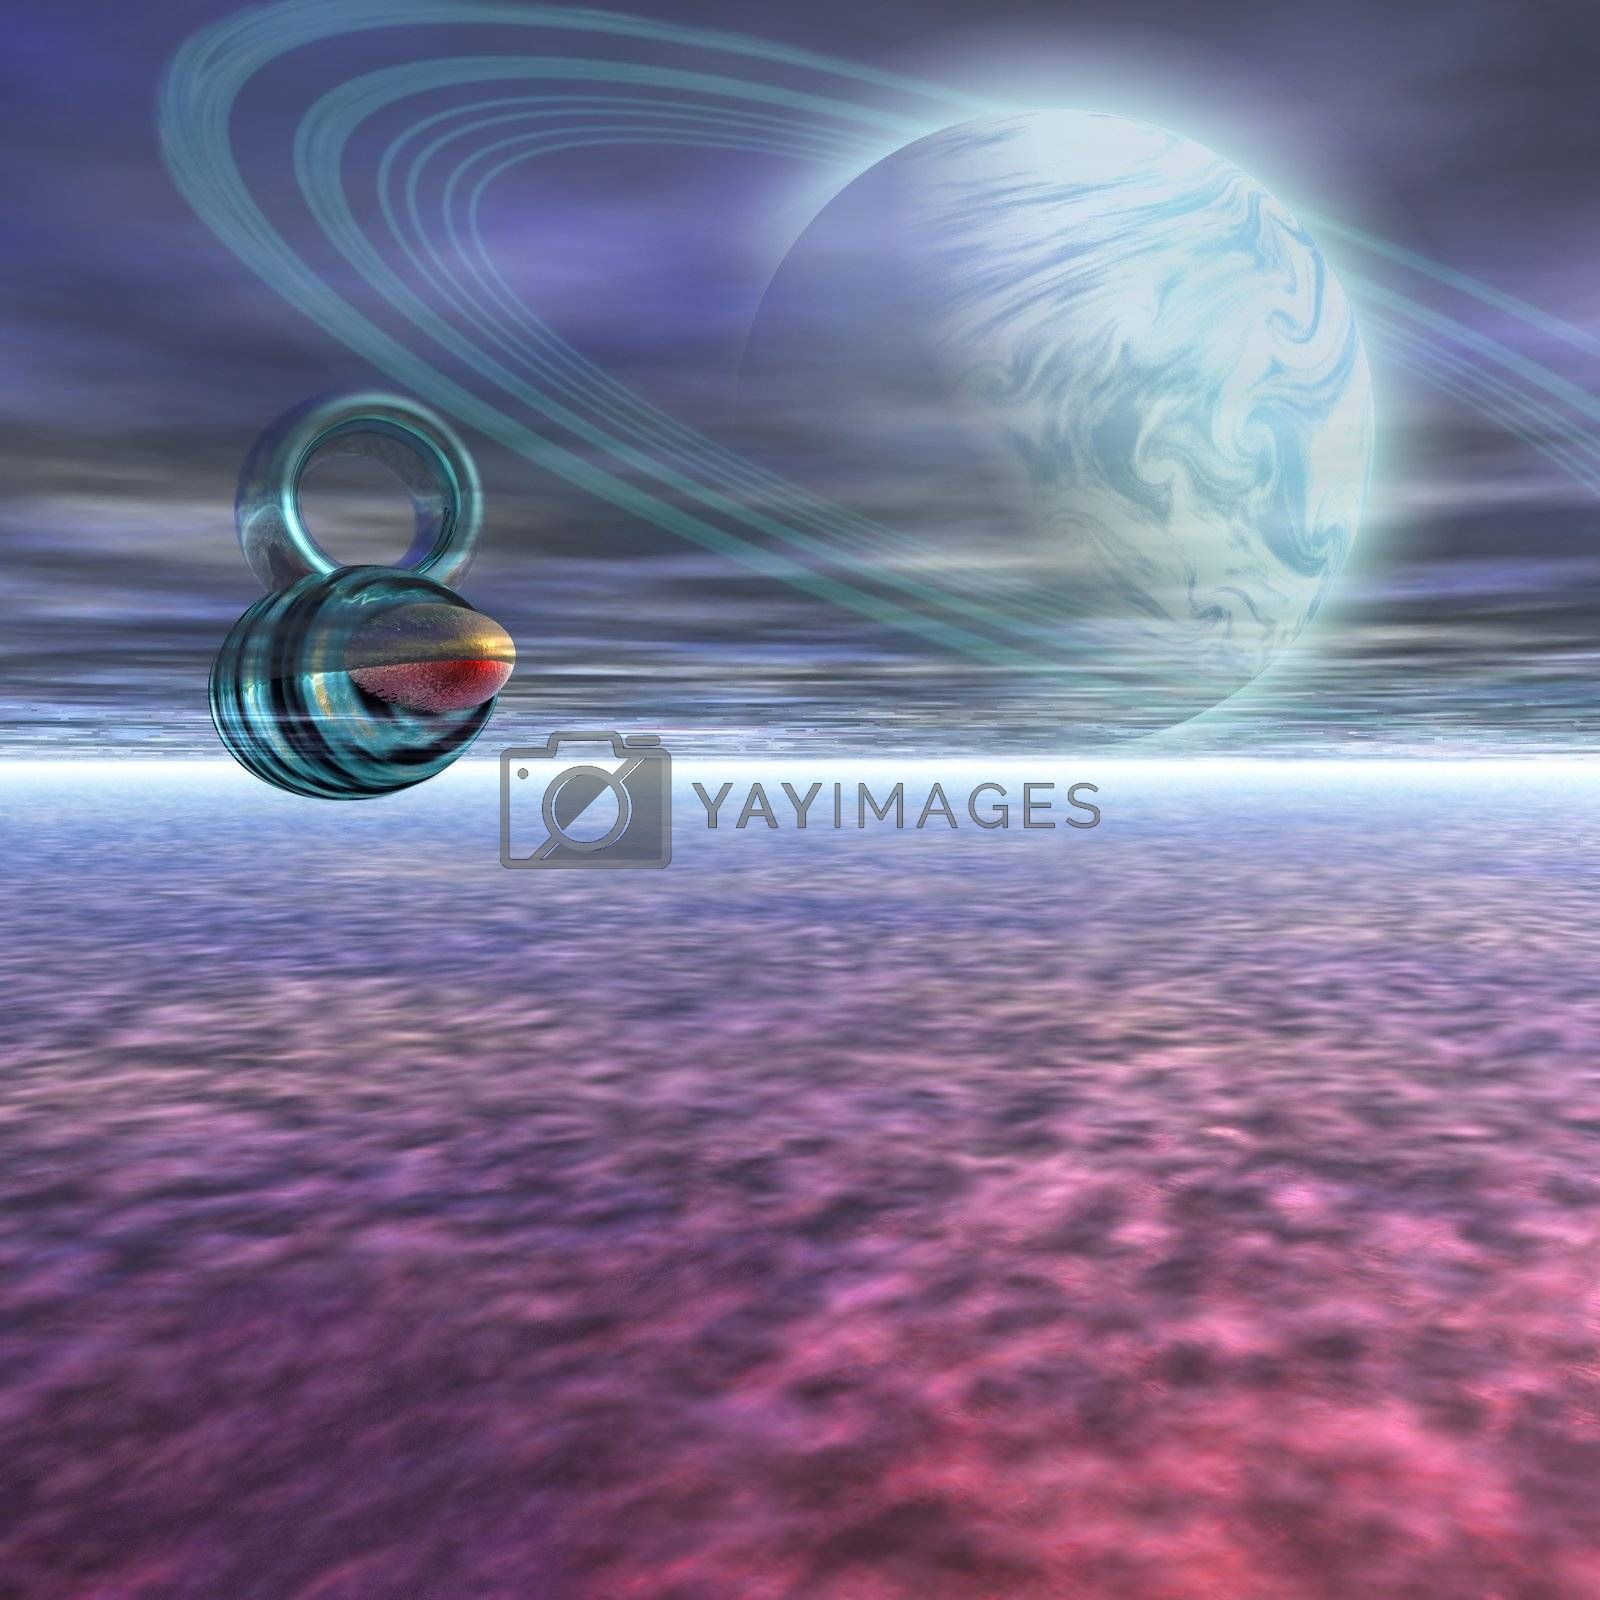 A probe from Earth is sent to Jupiter to scan the gaseous atmosphere.